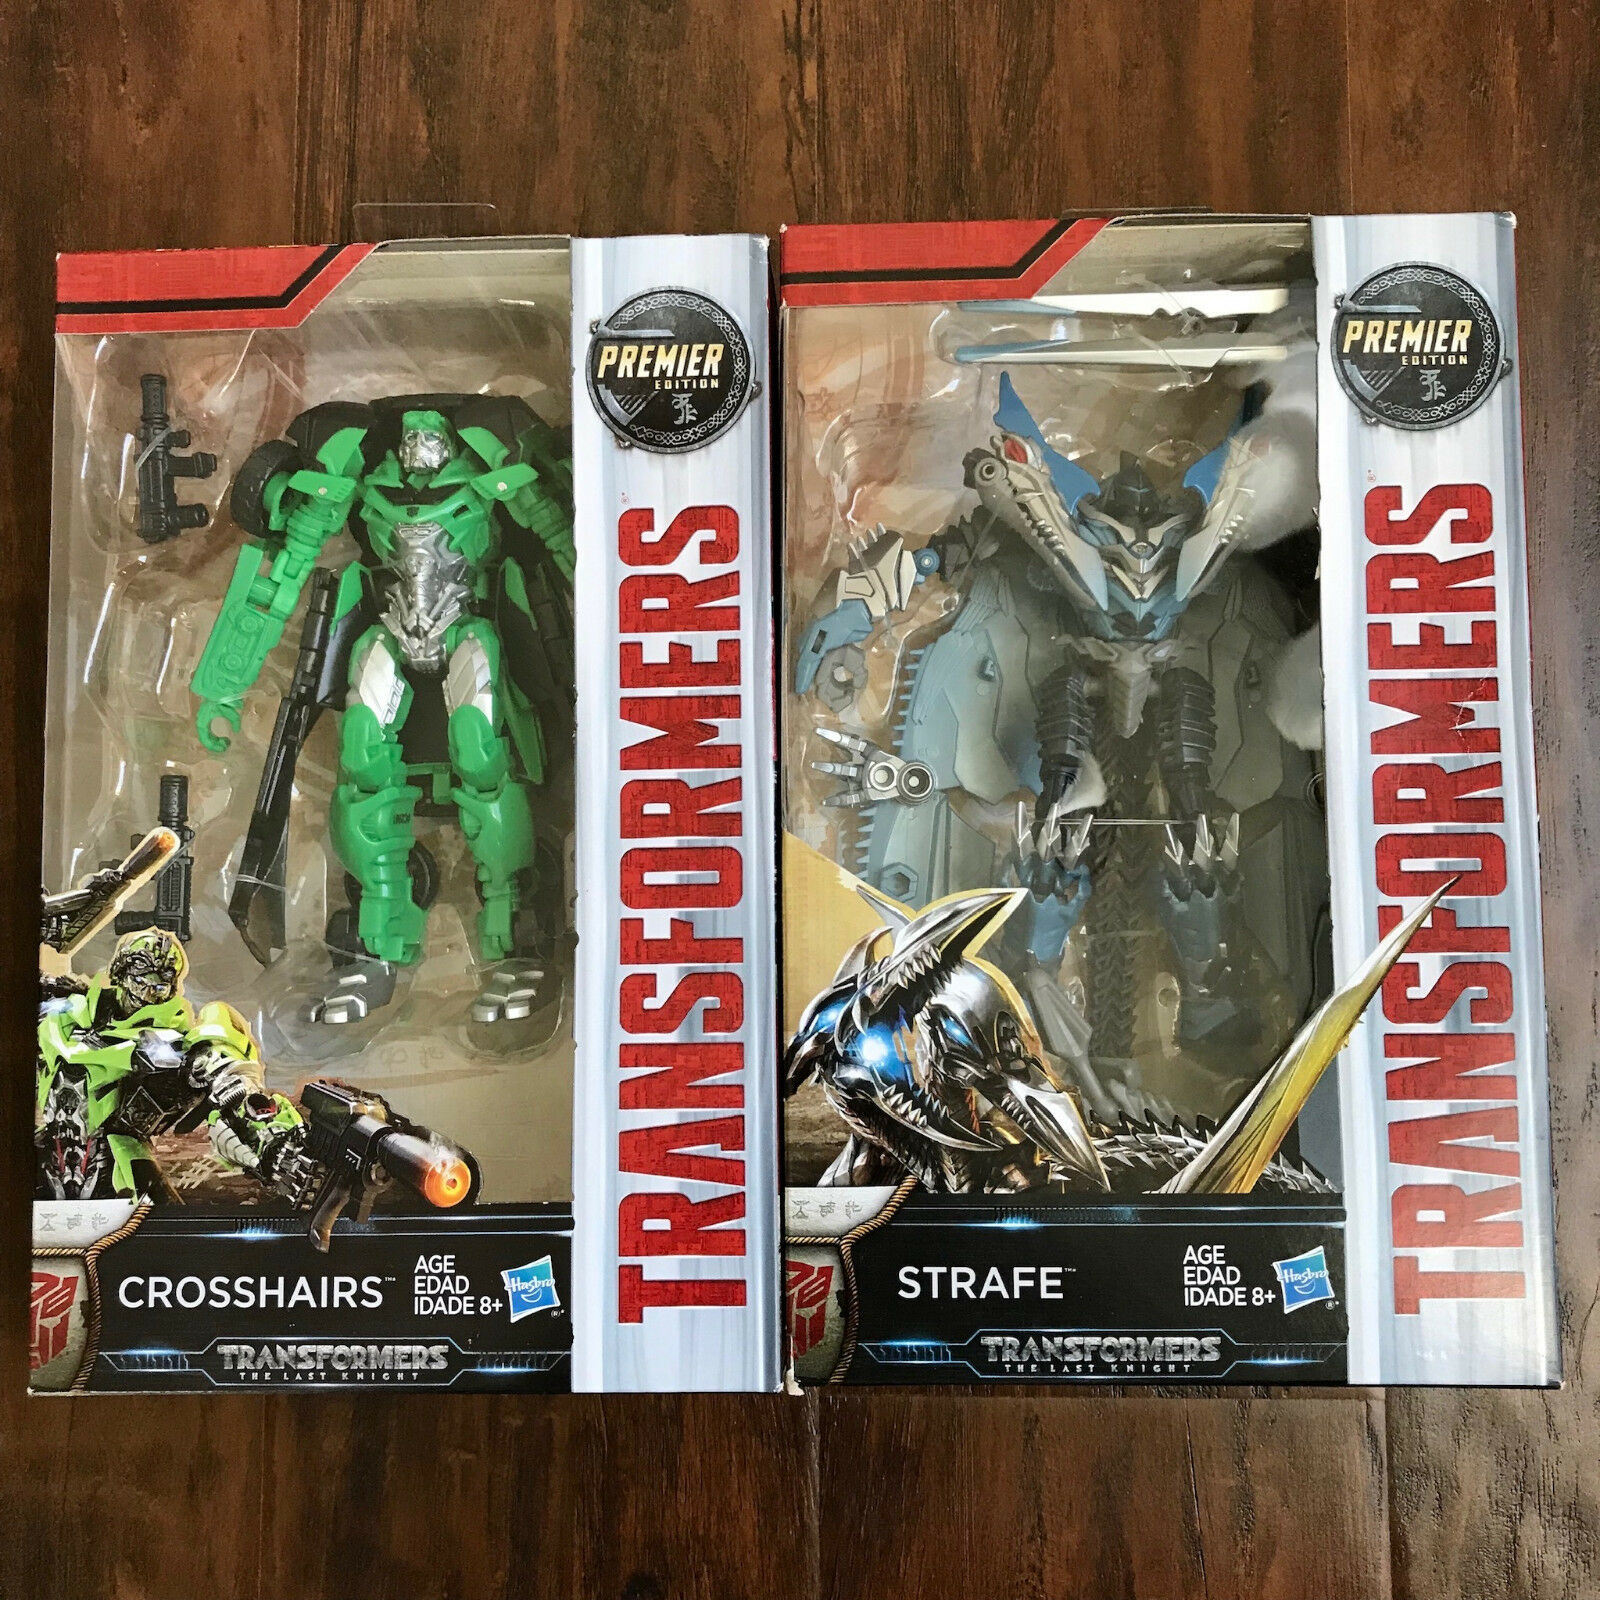 NEW Transformers The Last Knight PREMIER EDITION - Crosshairs & Strafe LOTS OF 2